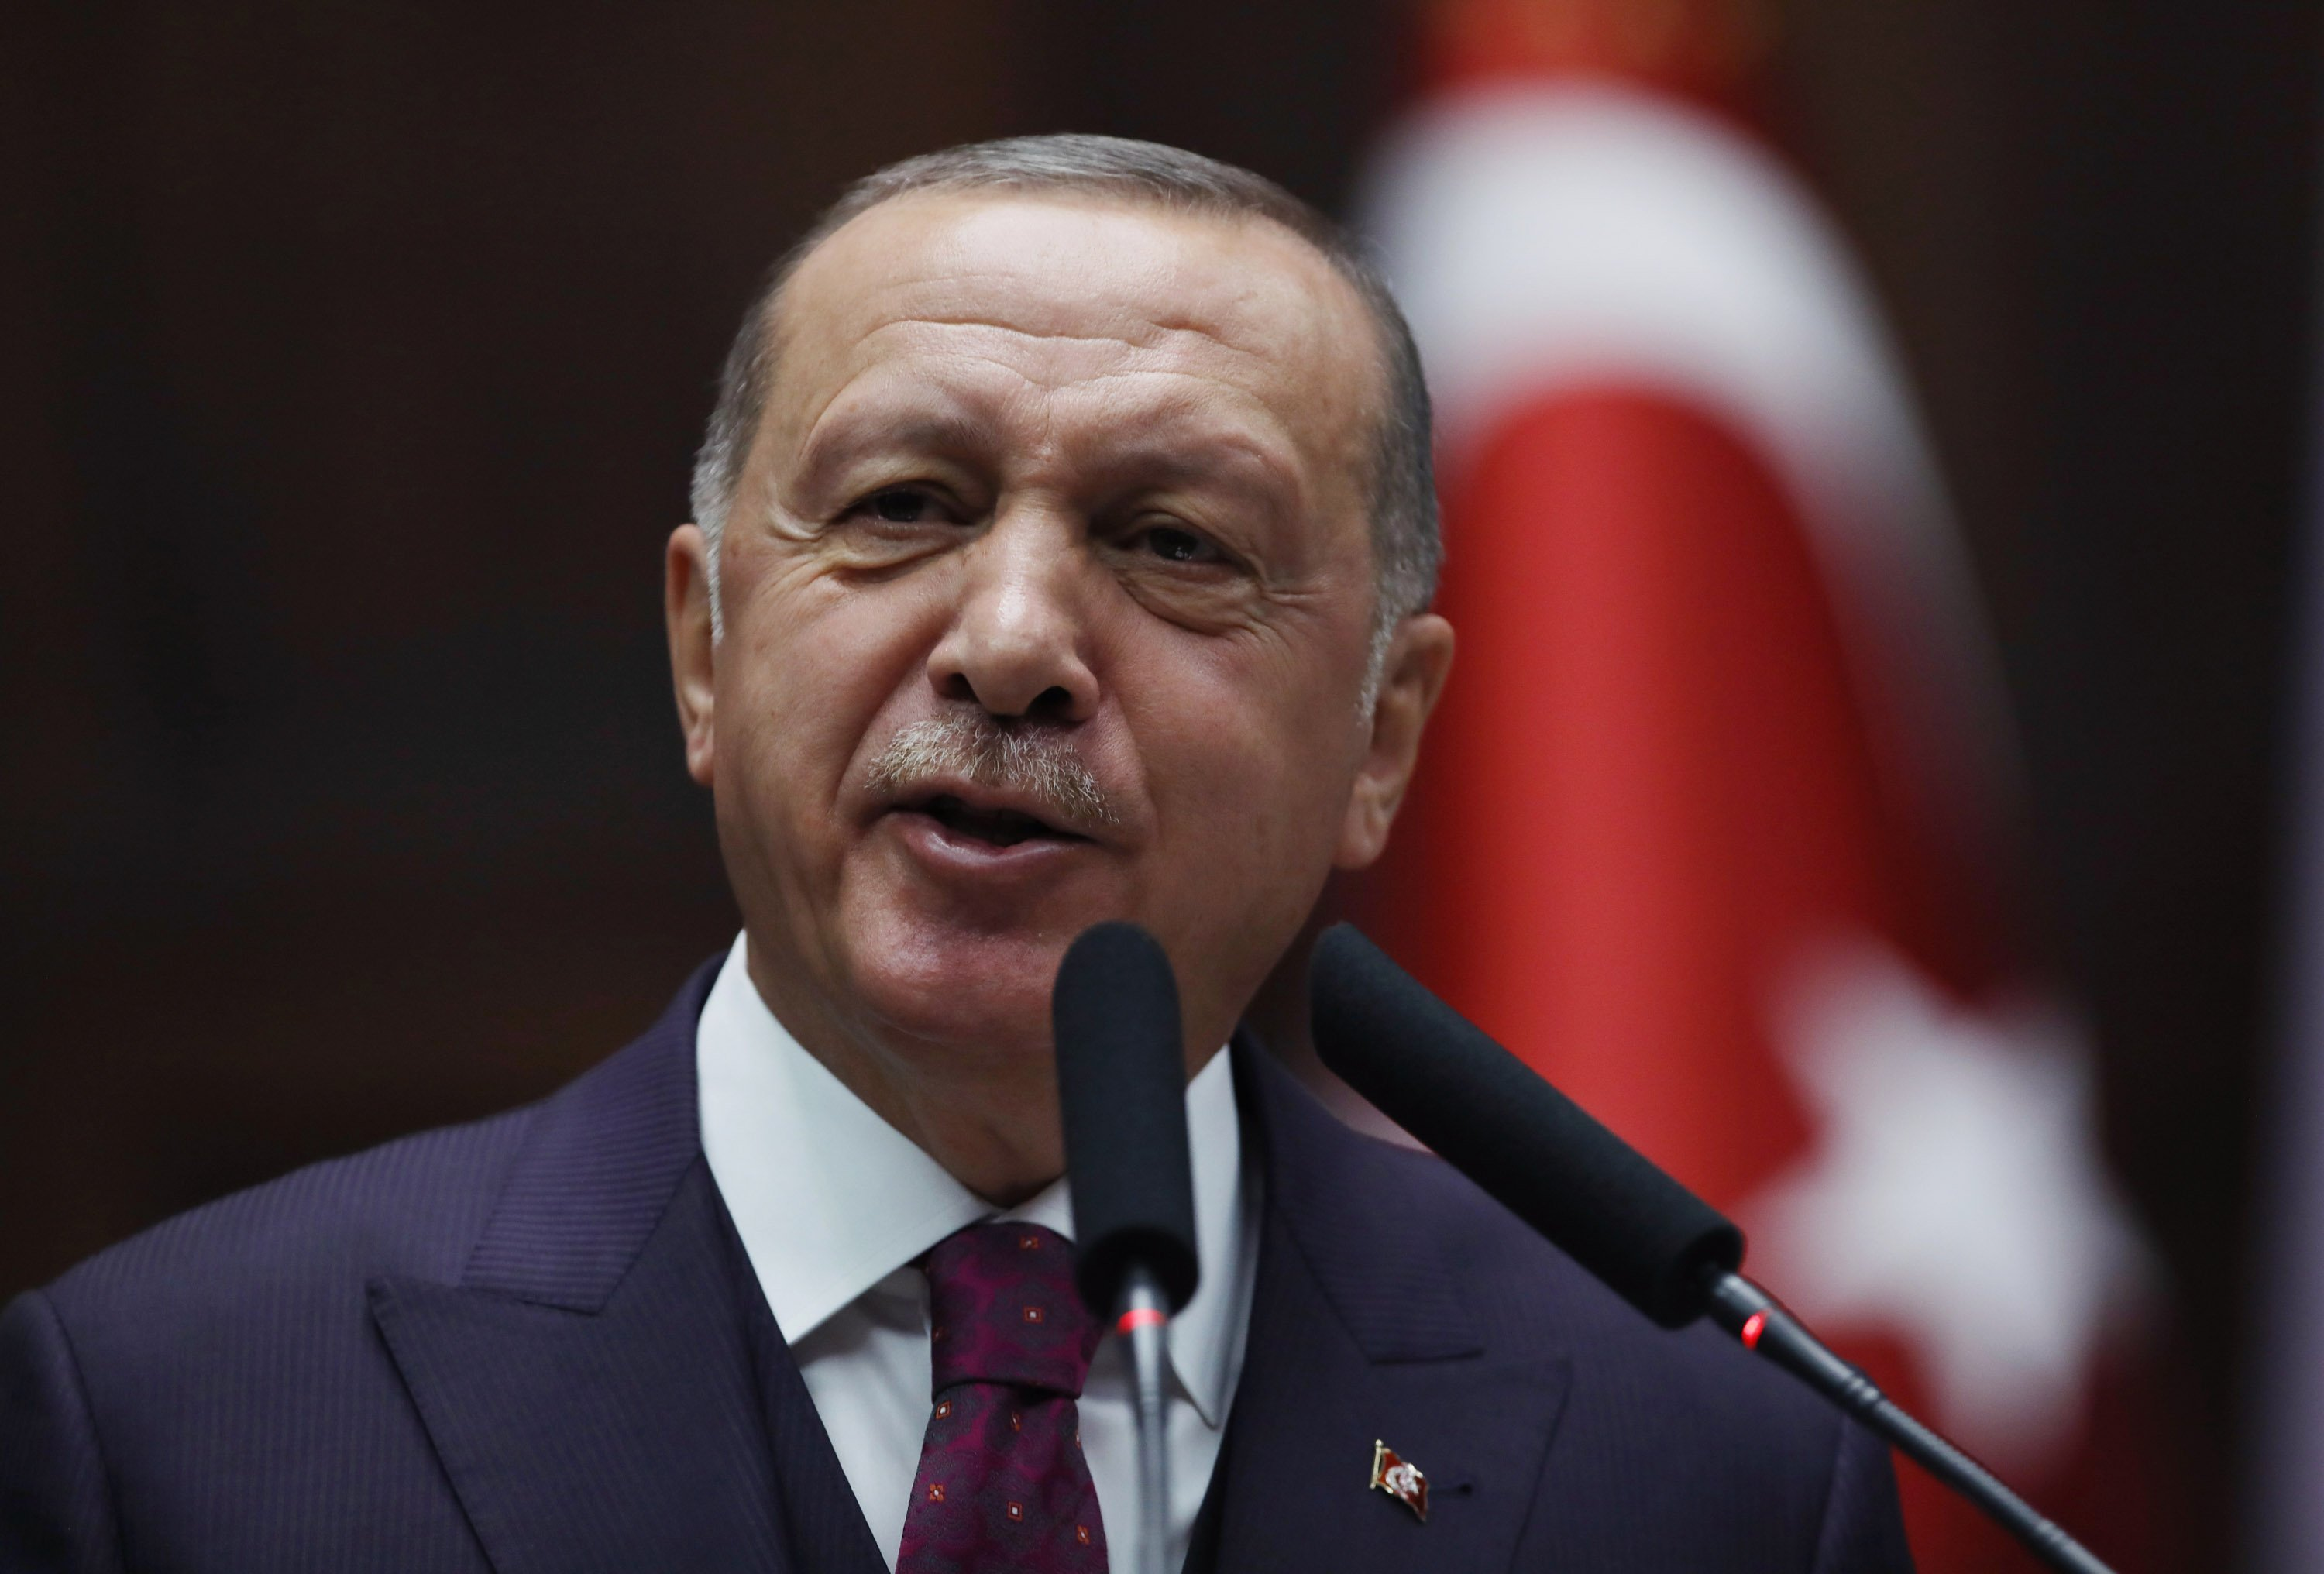 Expect the red carpet for Erdogan at the White House